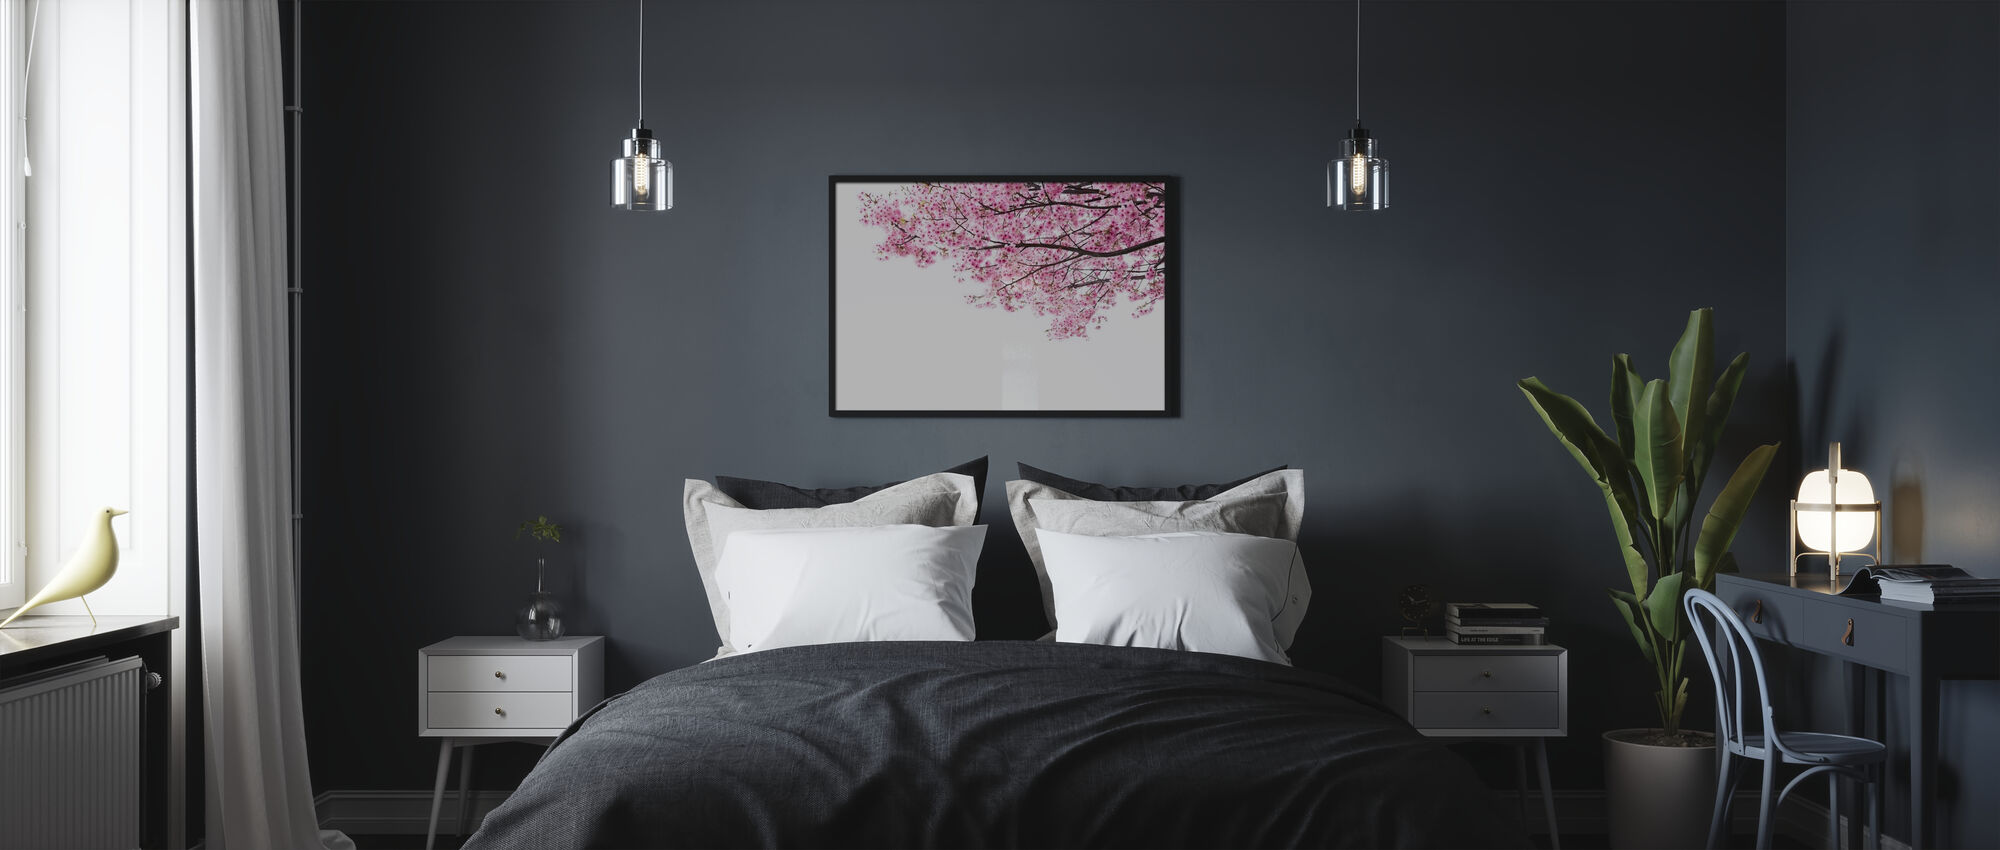 Pink Cherry Blossoms - Poster - Bedroom